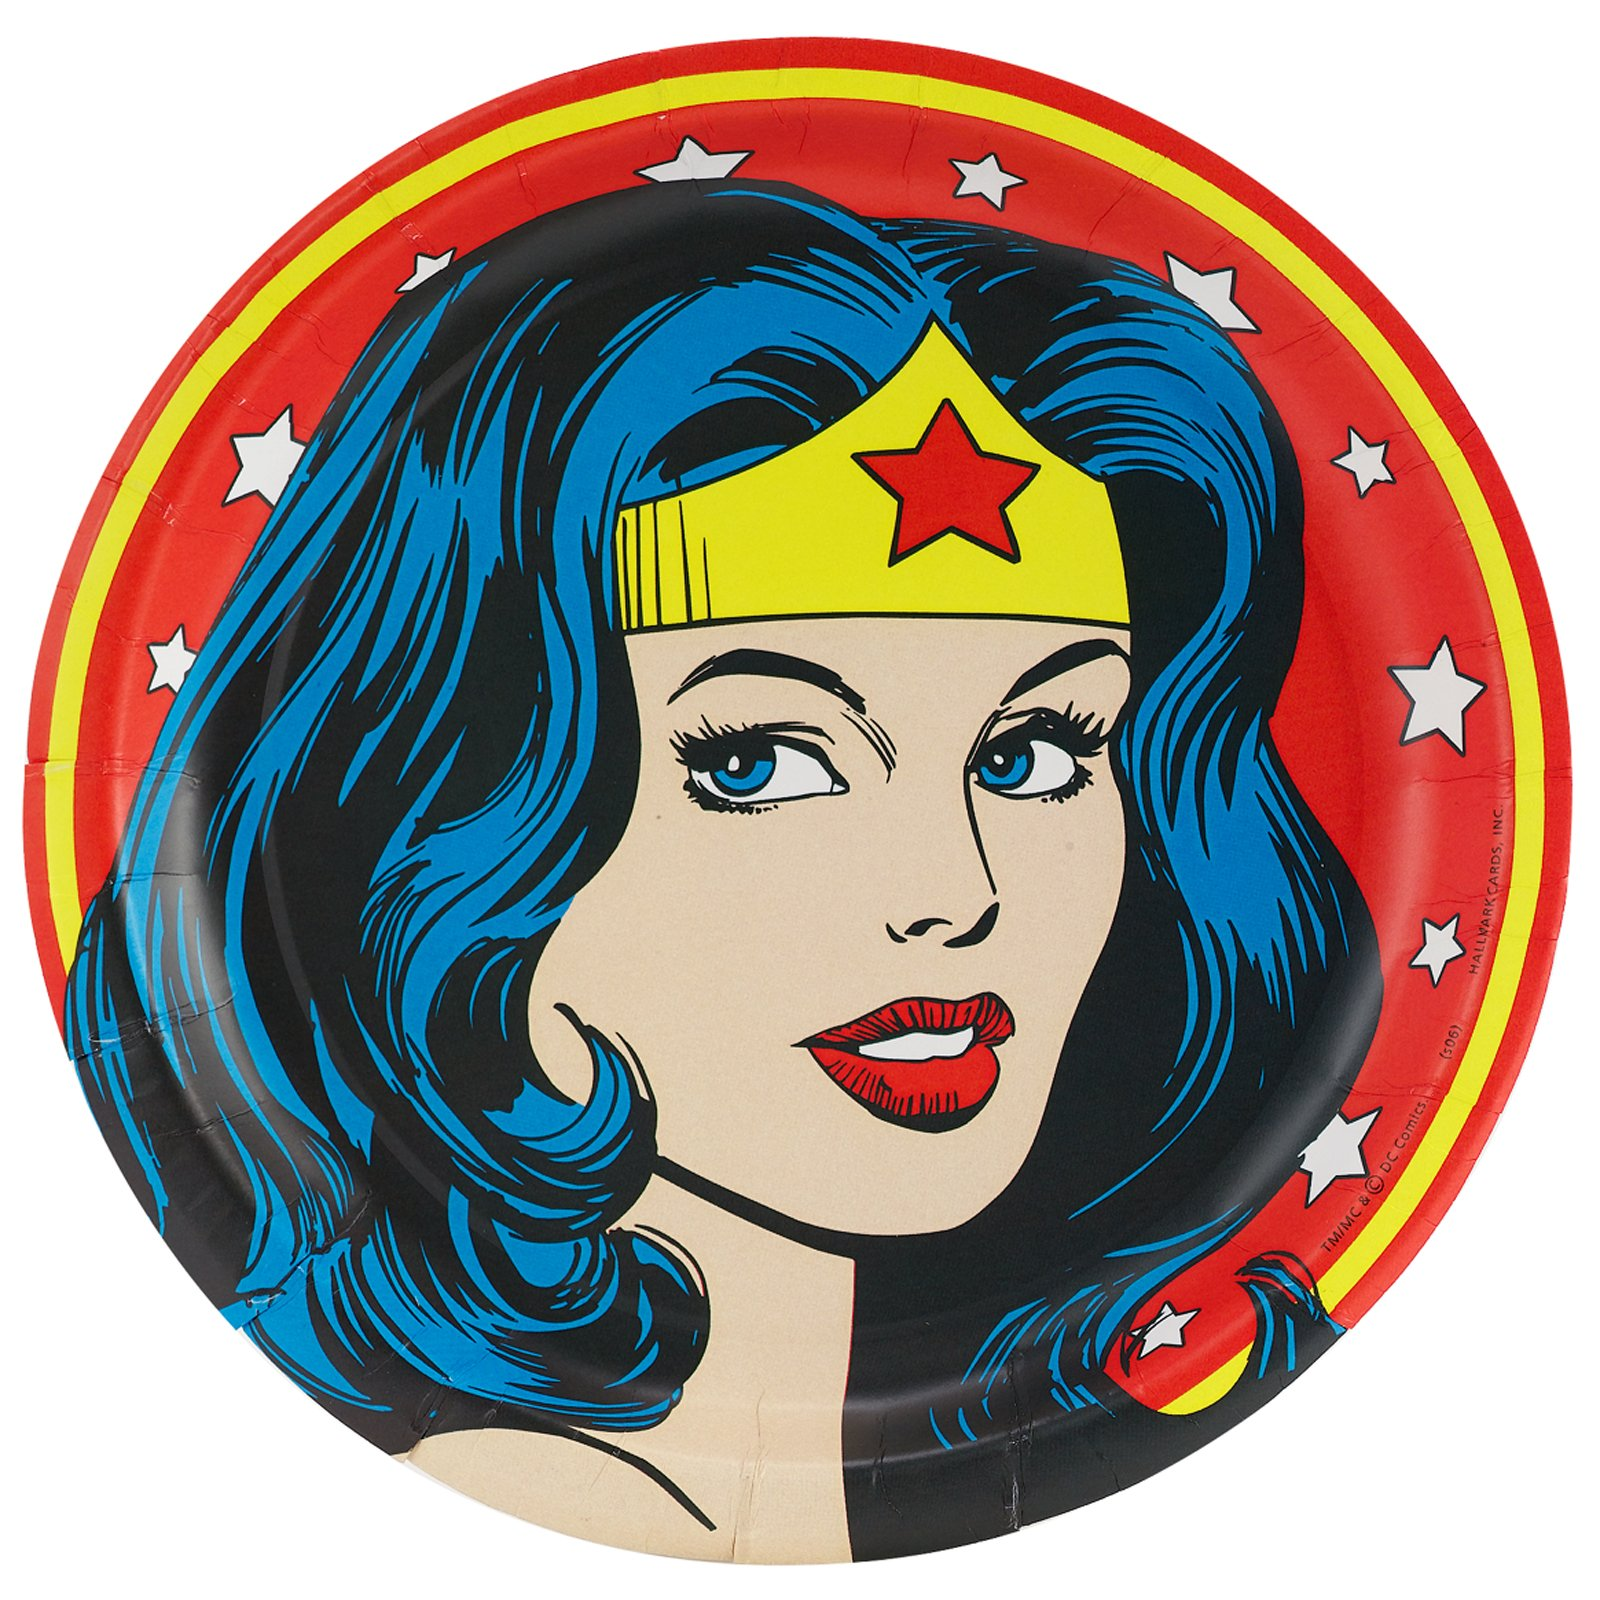 Clip Art Wonder Woman Clip Art wonder woman cartoon clipart kid making room for on the cw tg daily